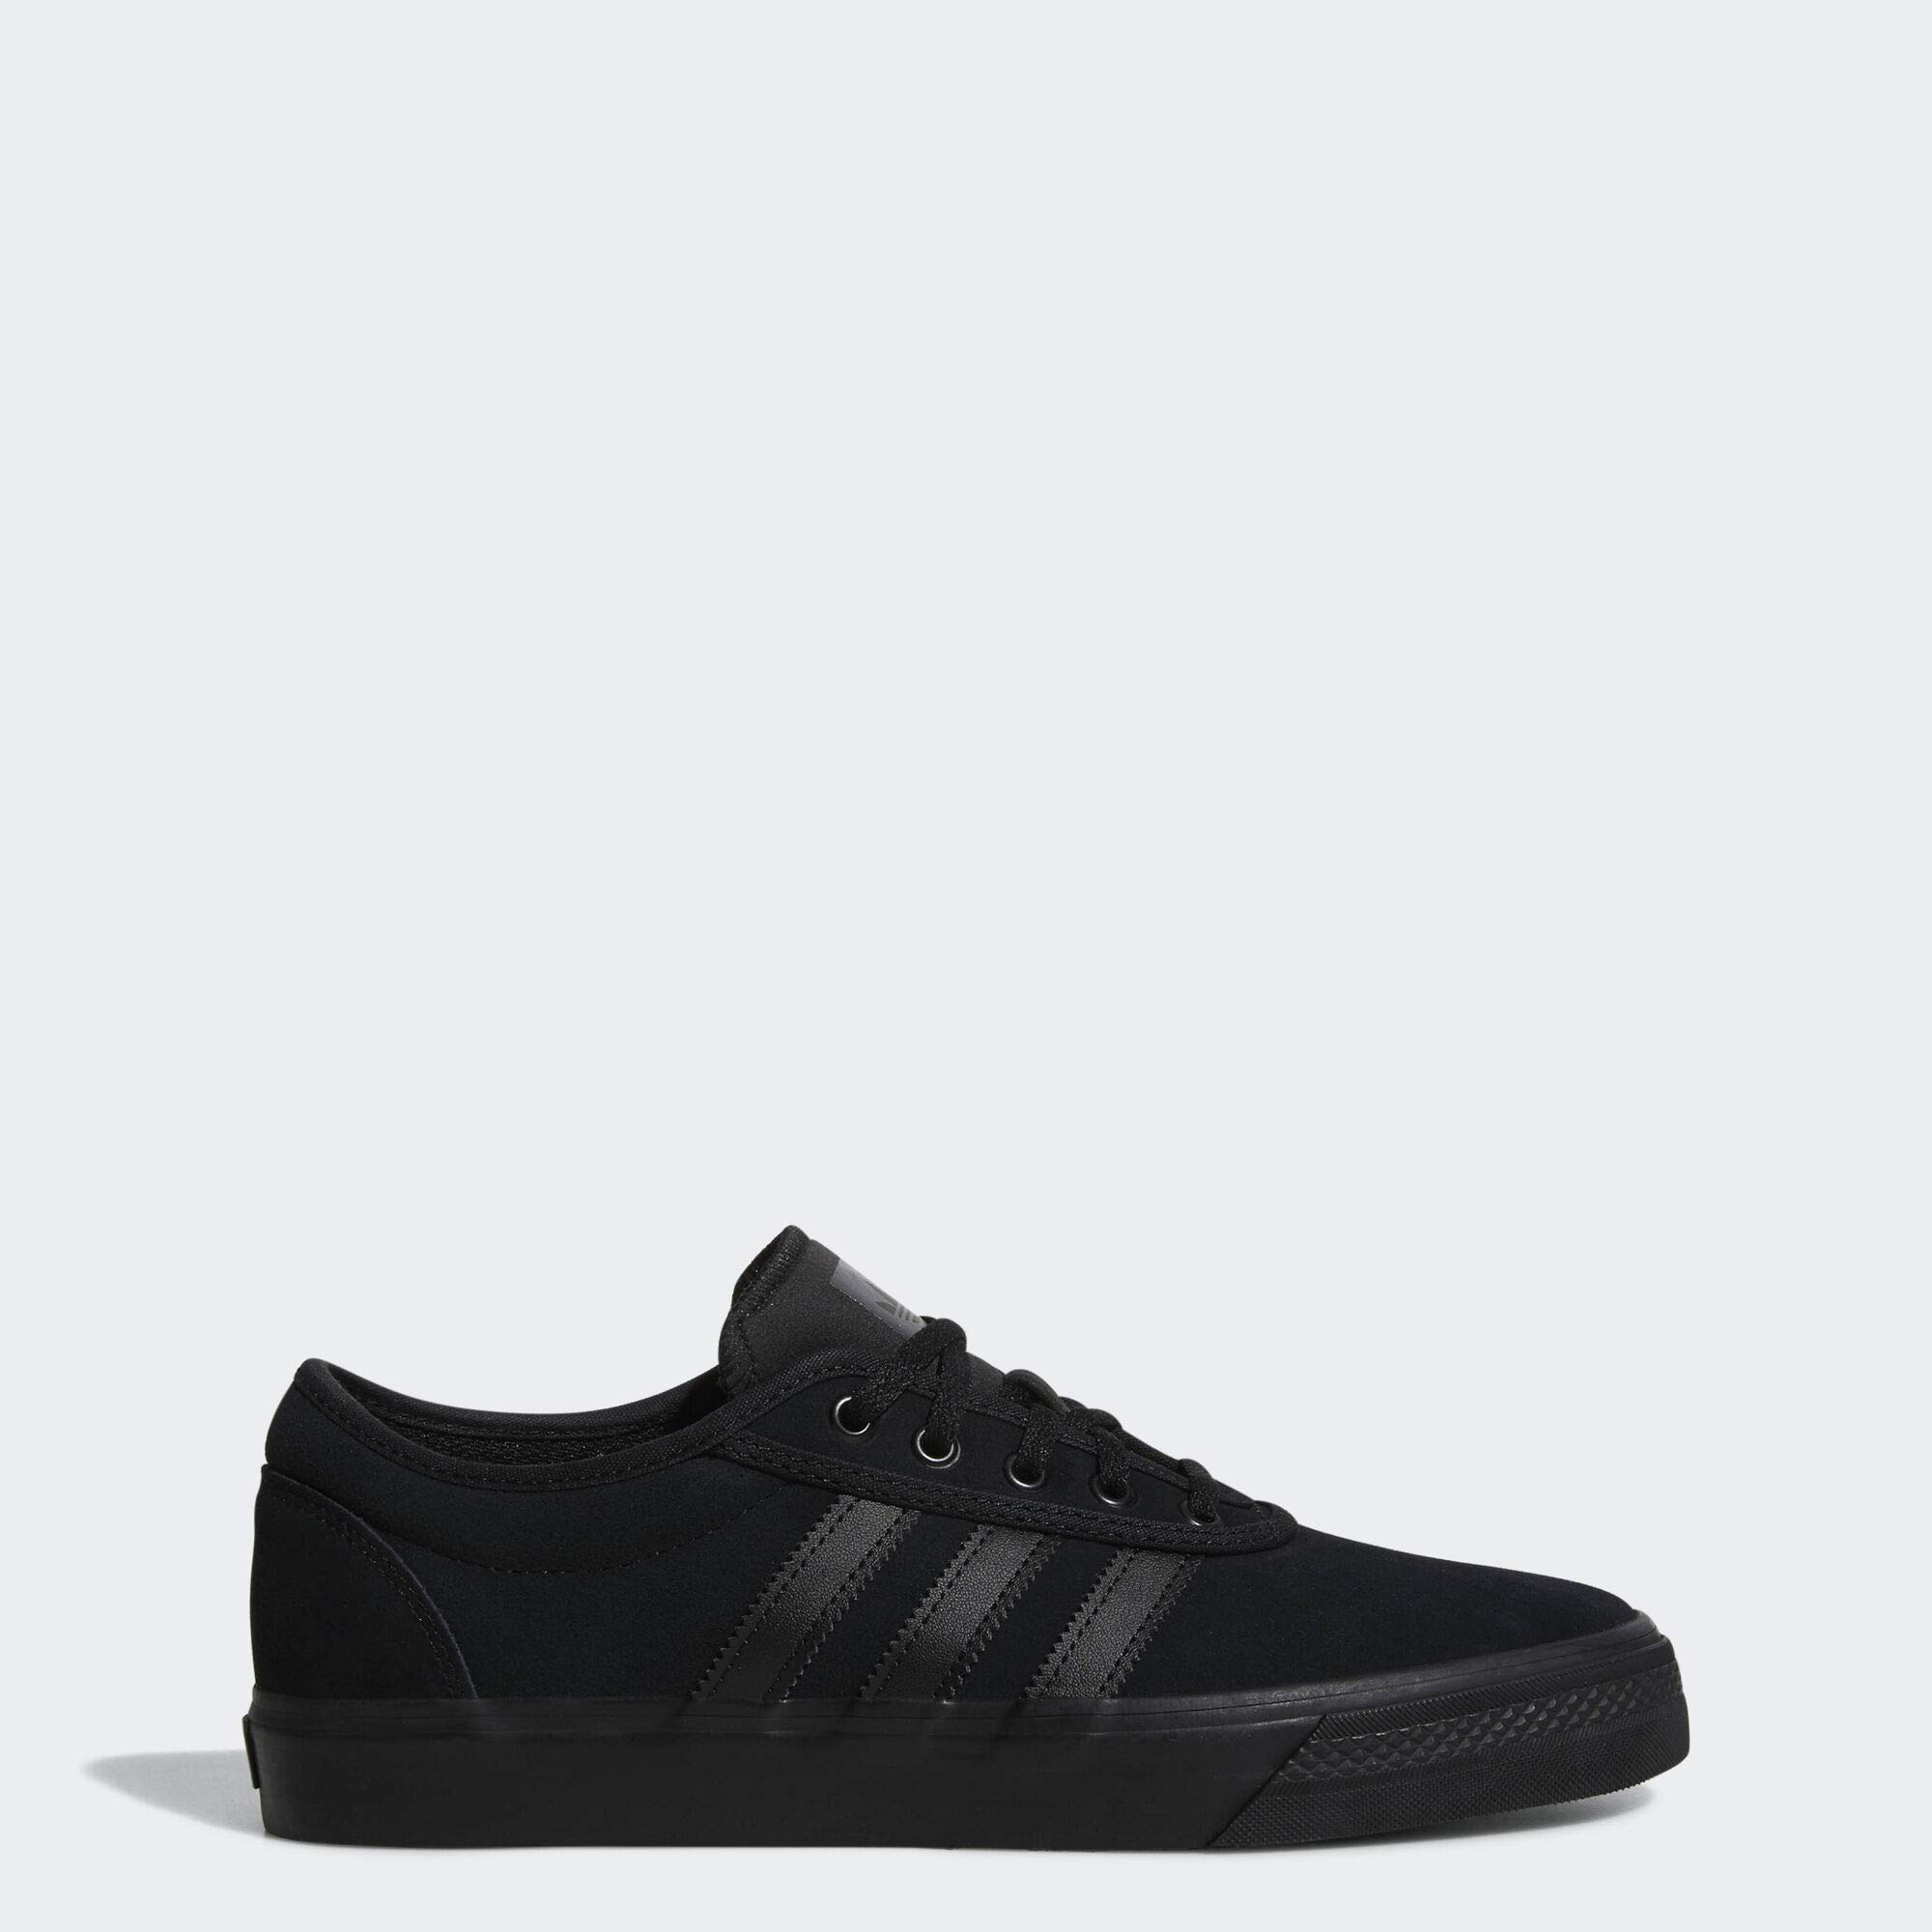 adidas Originals Men's Adi-Ease Premiere Skate Shoe, Black, 10 M US by adidas Originals